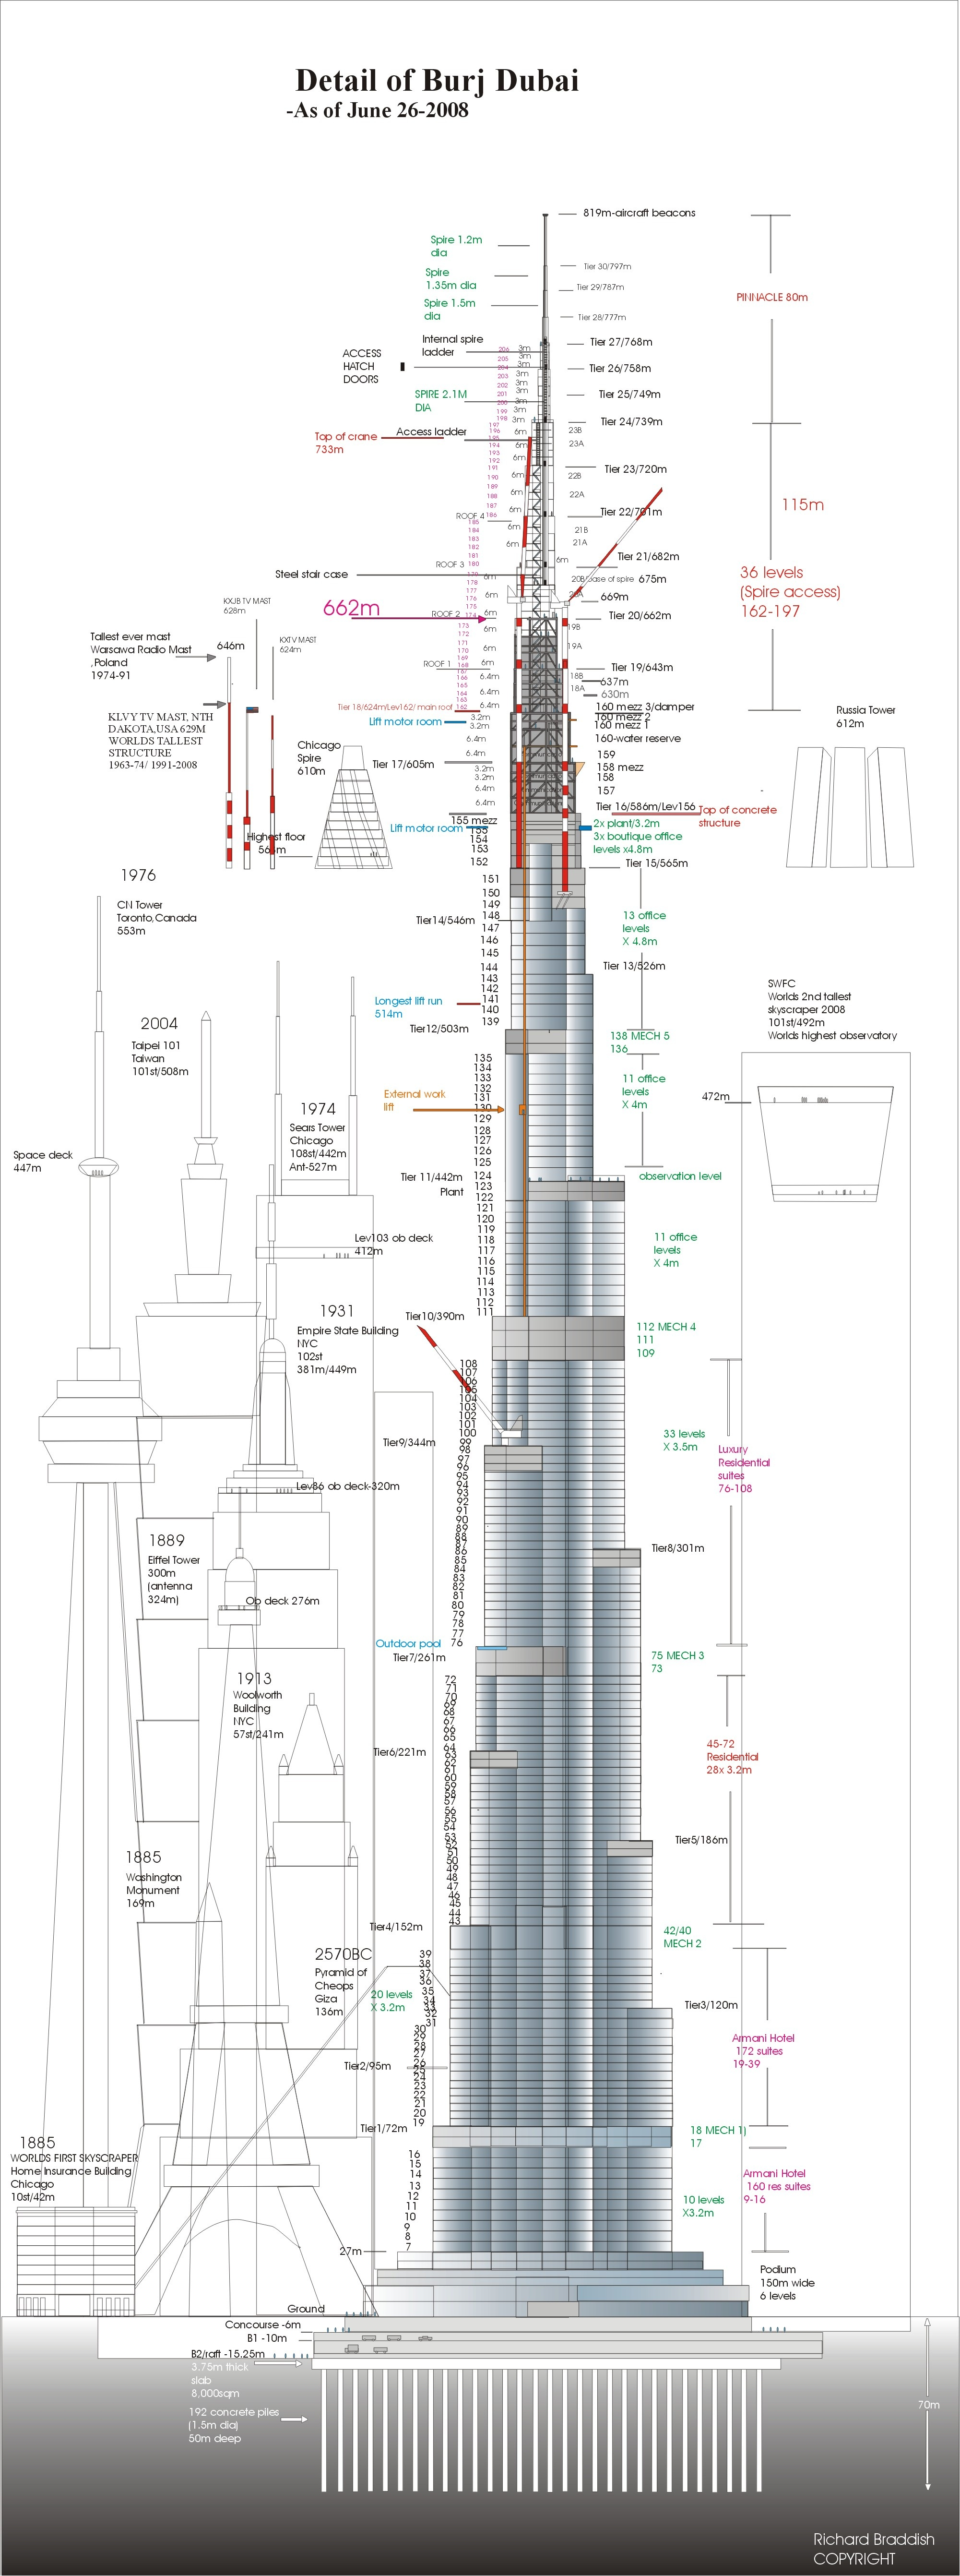 One of the tallest tower in dubai with 819 meters aircraft beacon.